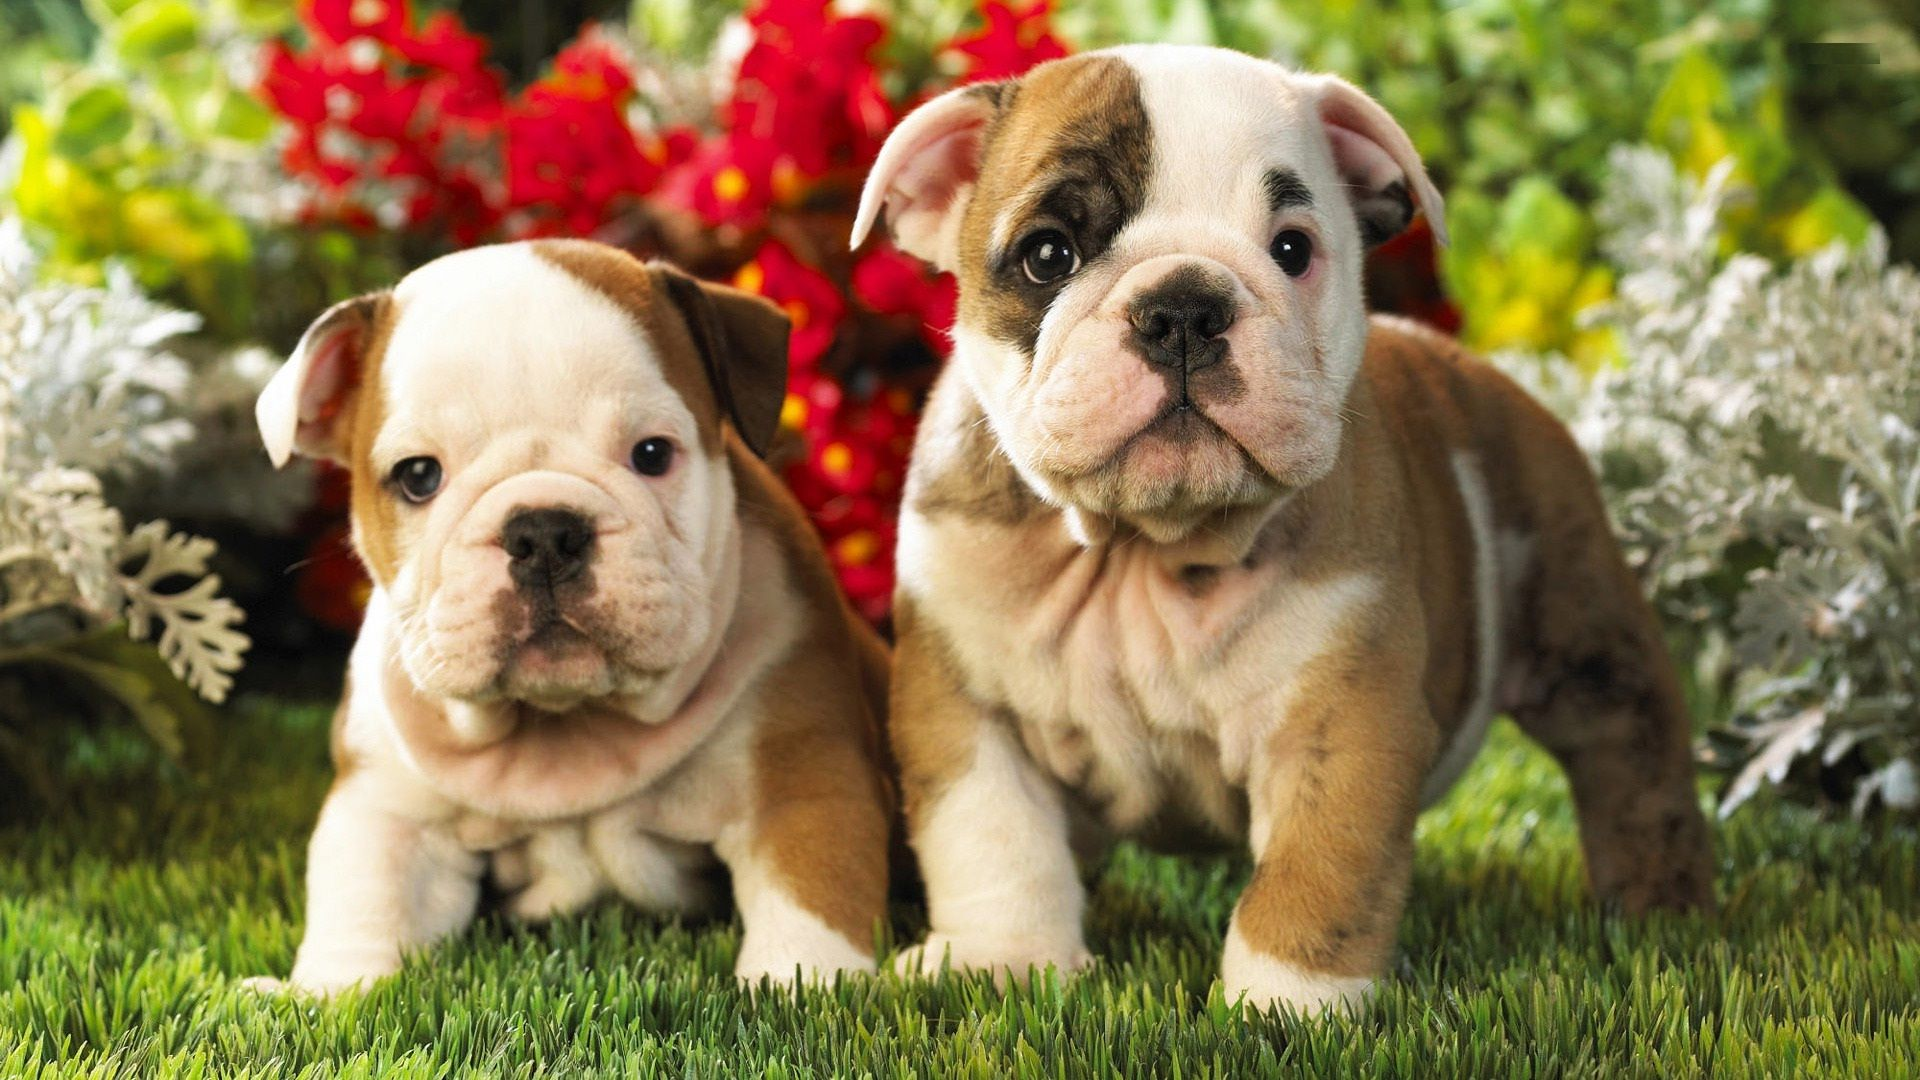 cutest puppy backgrounds